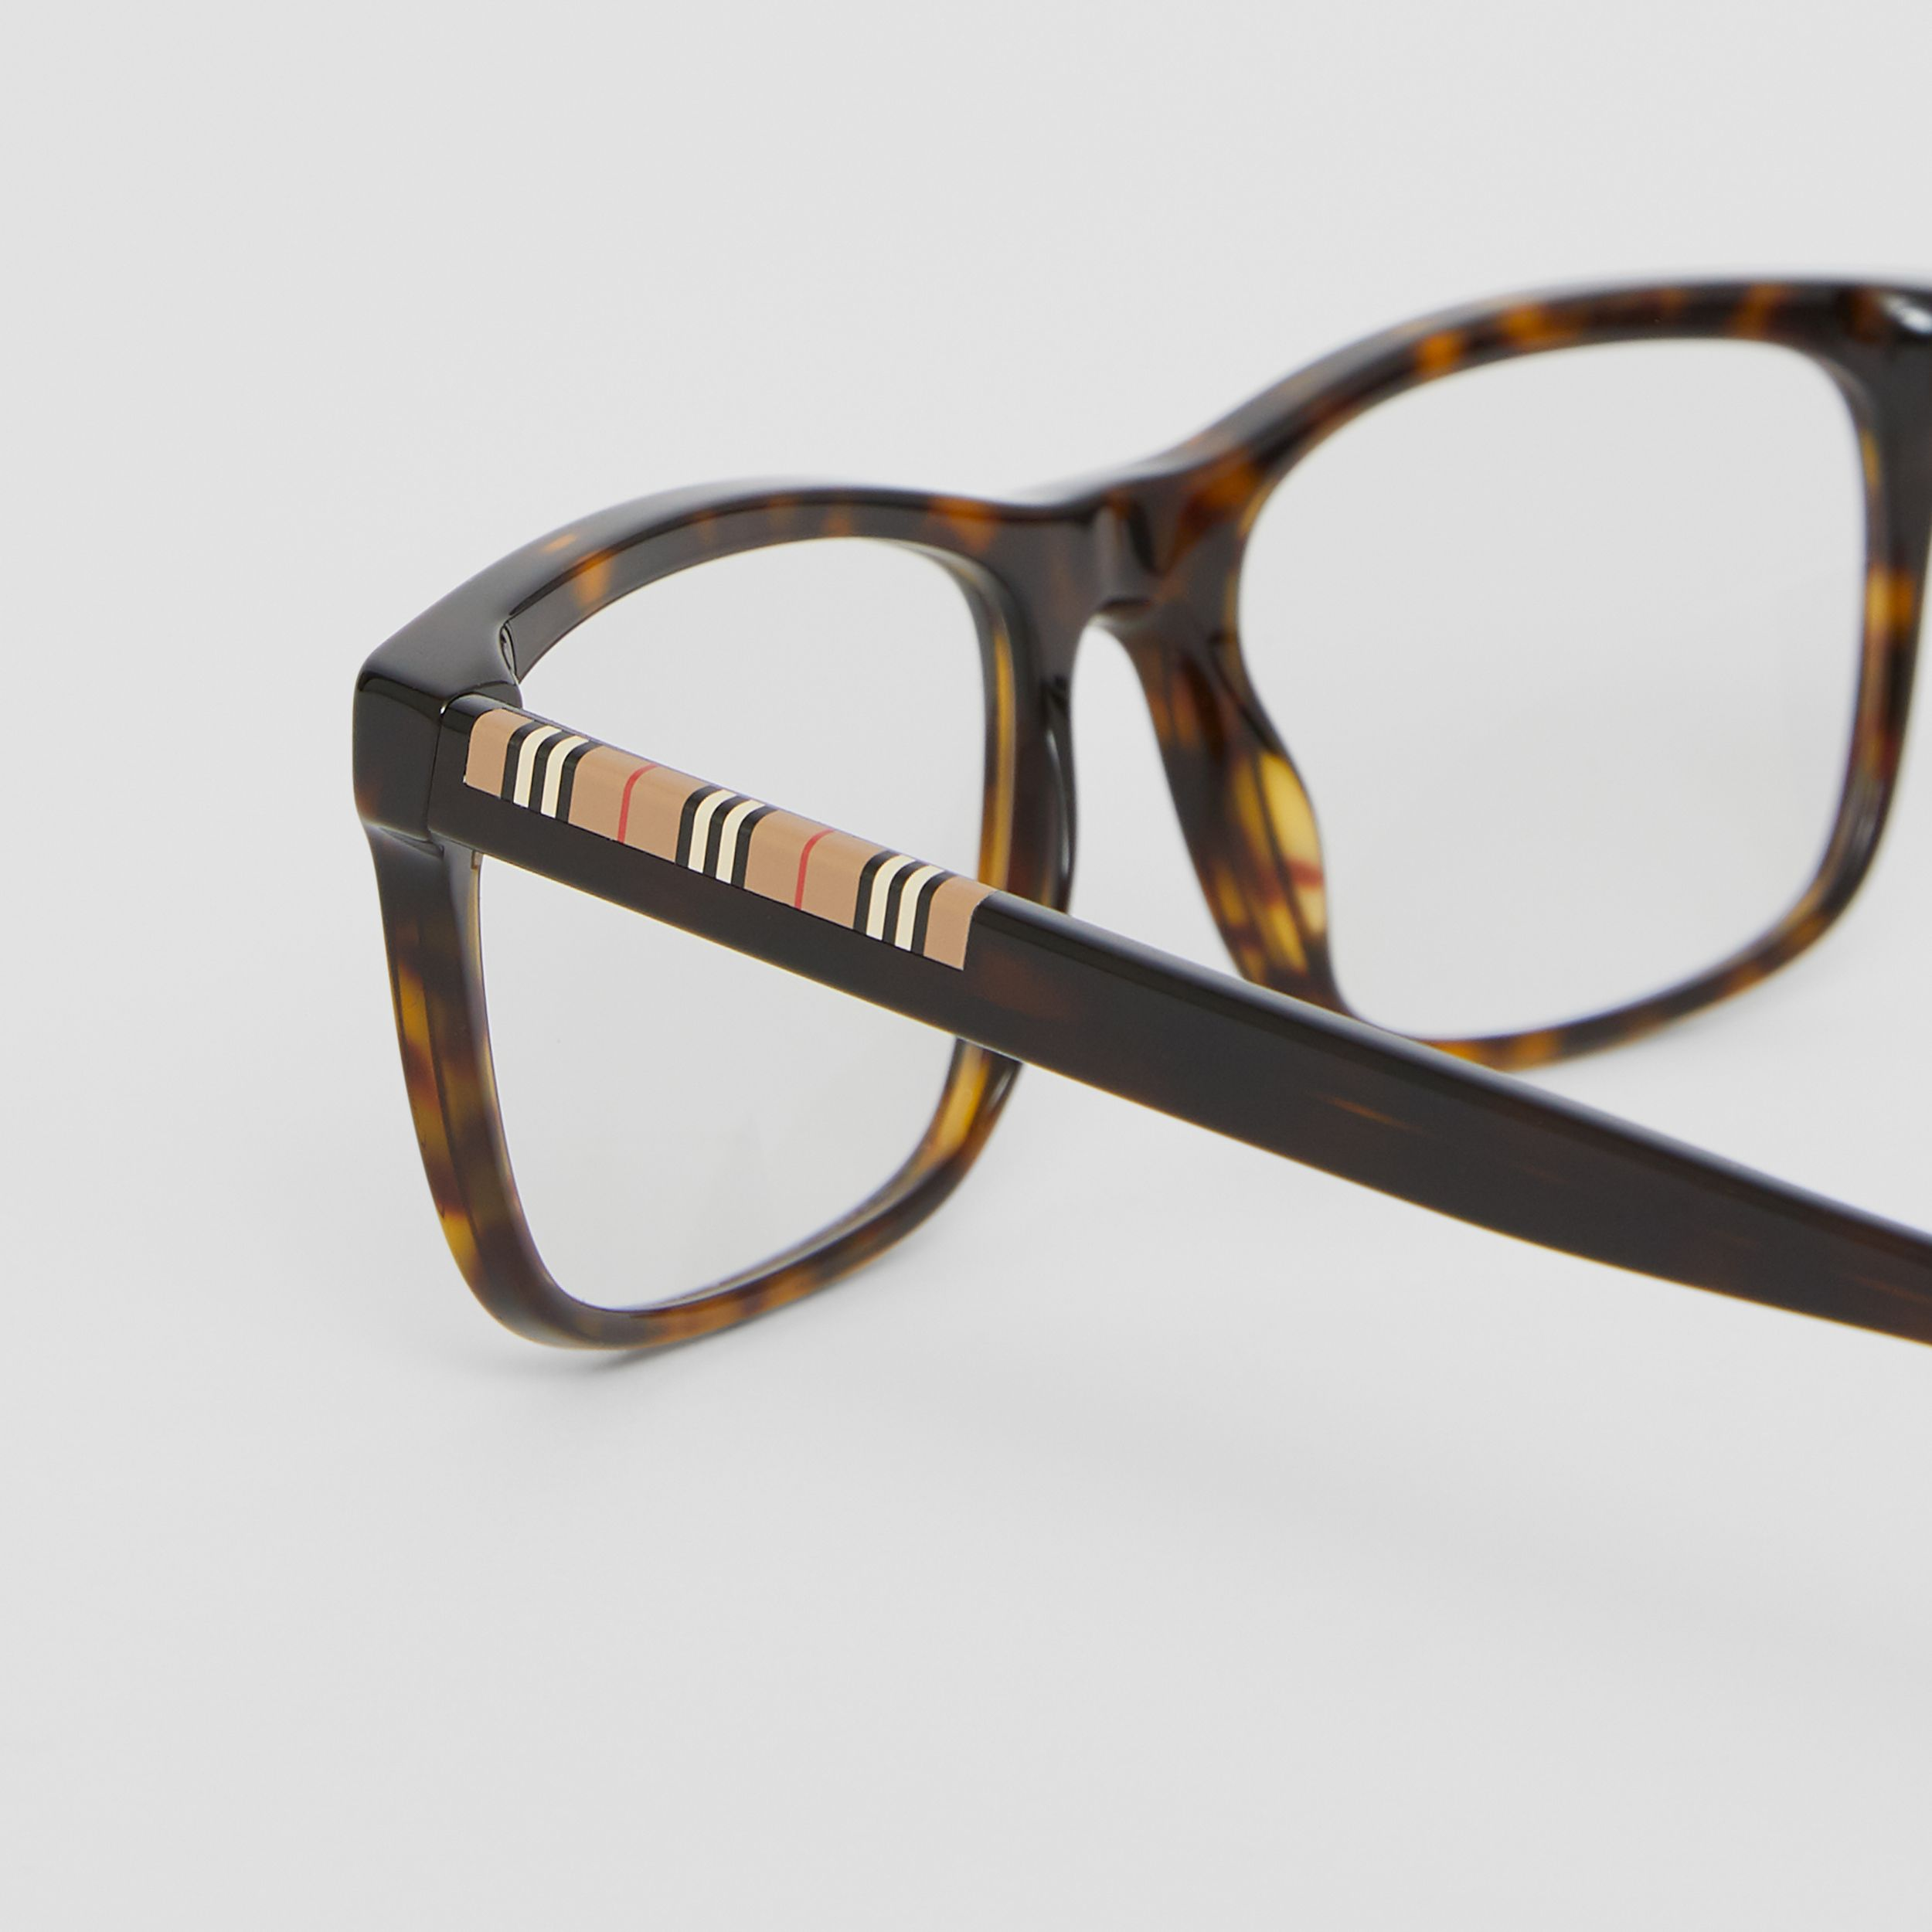 Icon Stripe Detail Rectangular Optical Frames in Tortoiseshell - Men | Burberry - 2